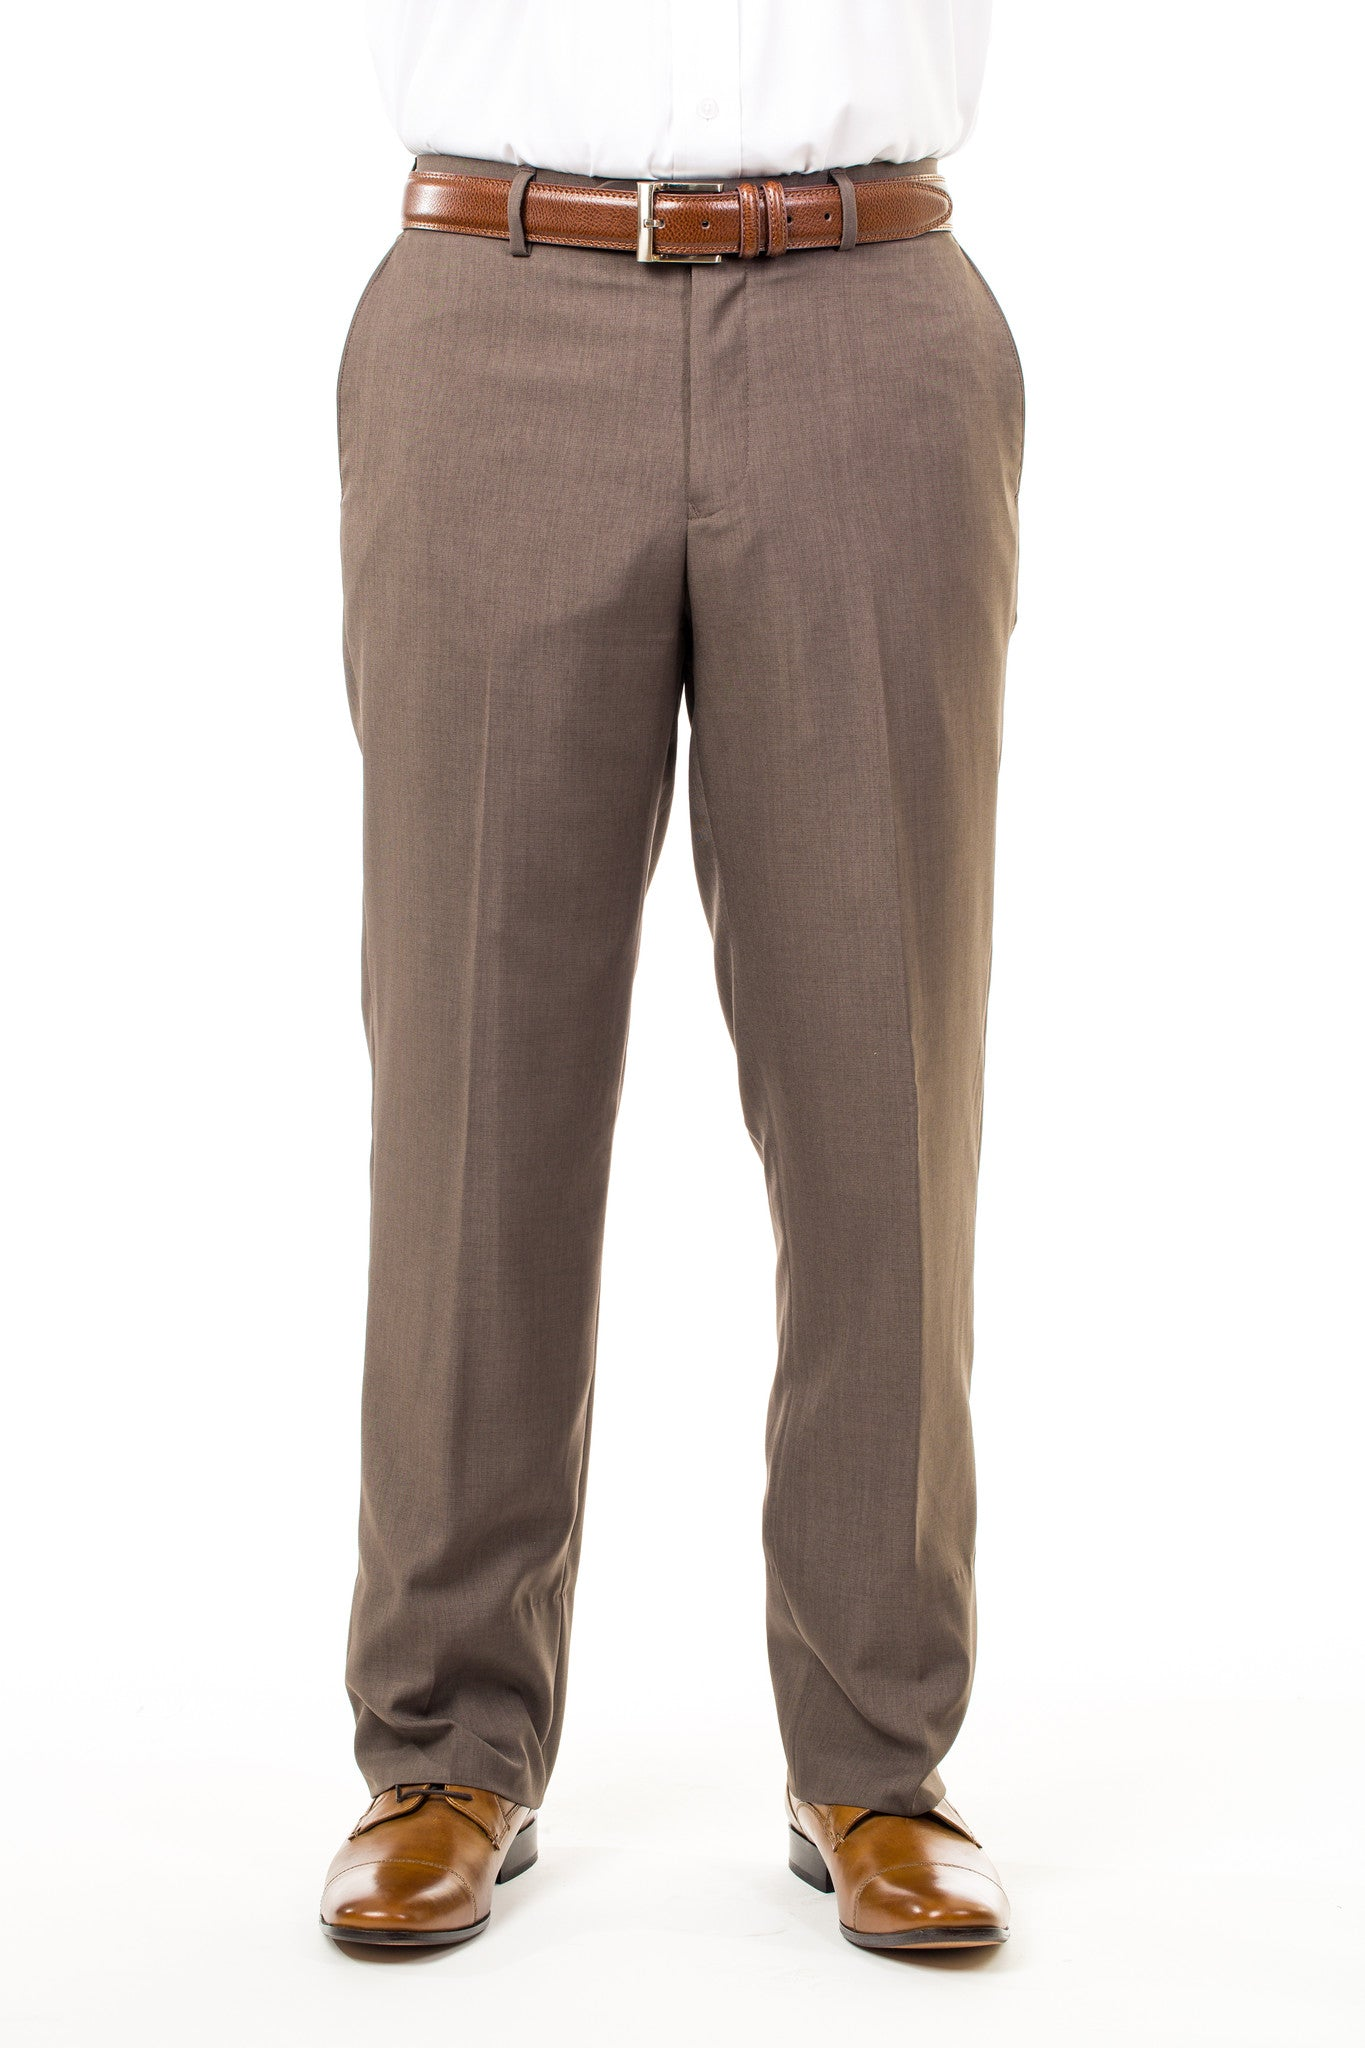 Featherweight Modern Fit Missionary Dress Pant by CTR Clothing - Kater Shop